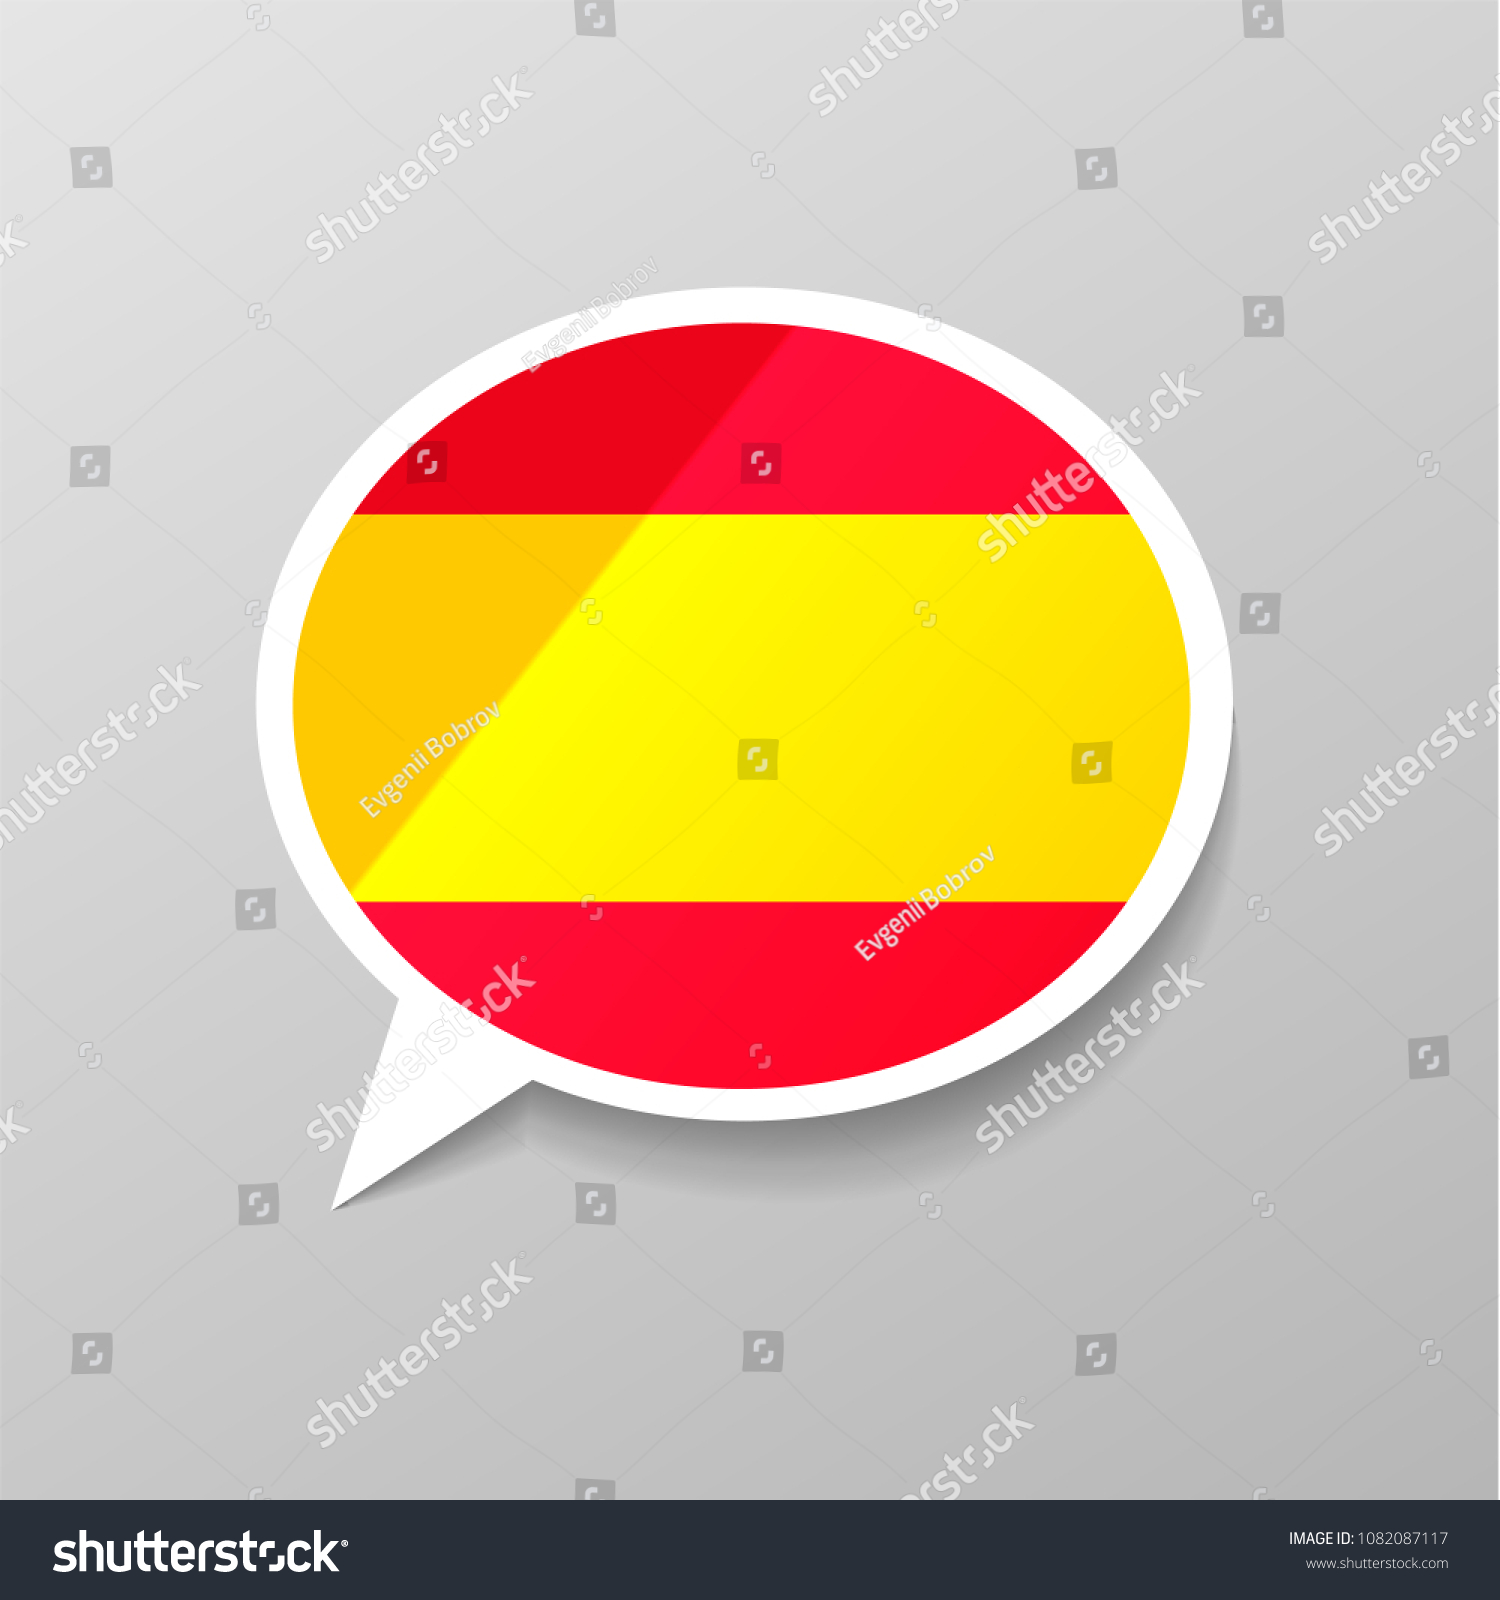 Bright glossy sticker in speech bubble shape with spain flag spanish language concept on gray